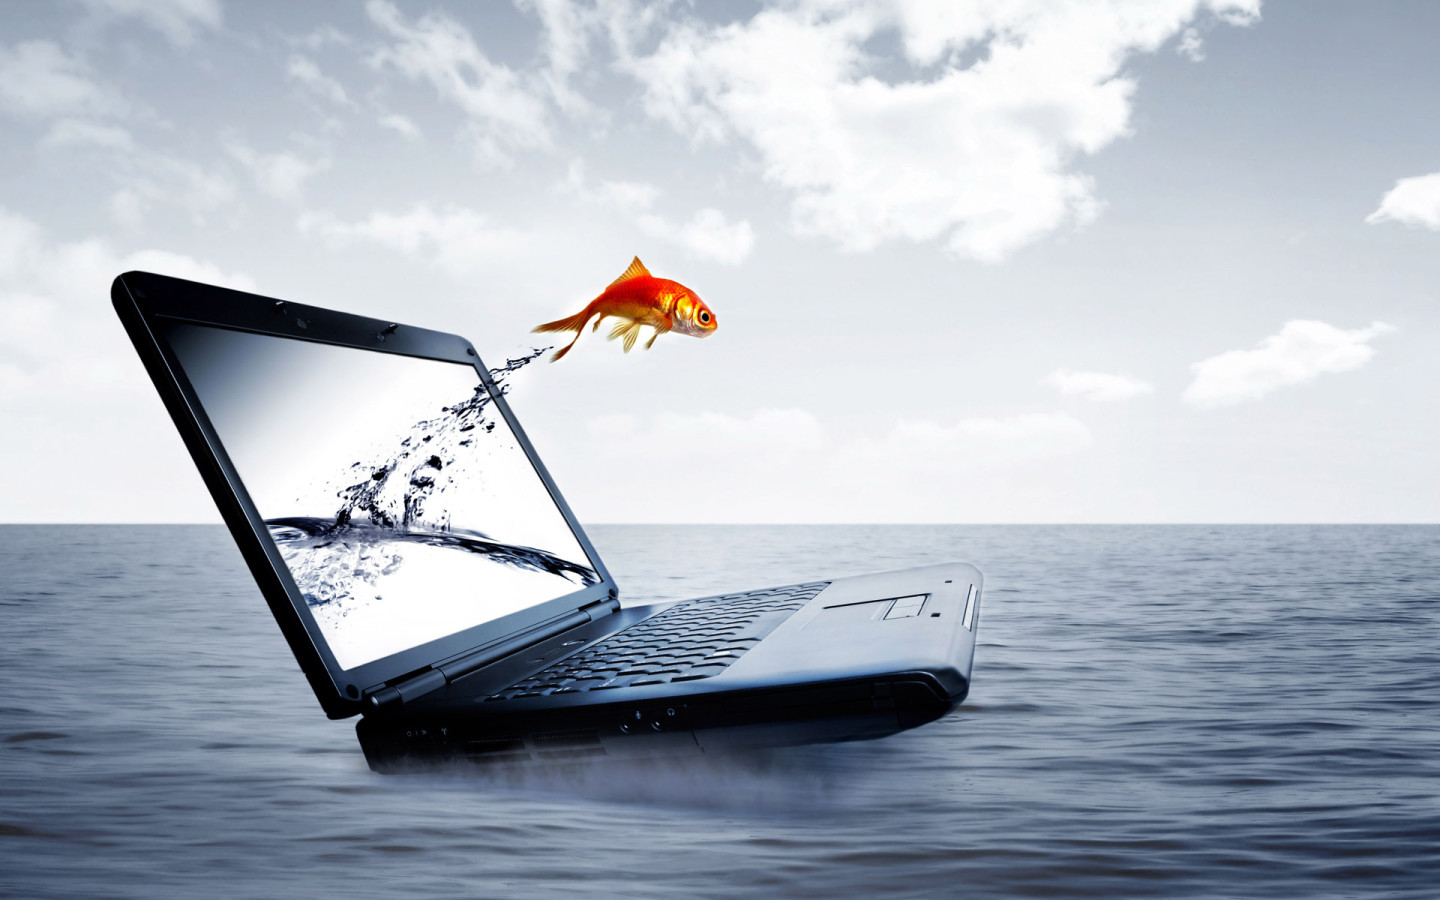 Wallpaper Download For Laptop   wwwproteckmachinerycom 1440x900